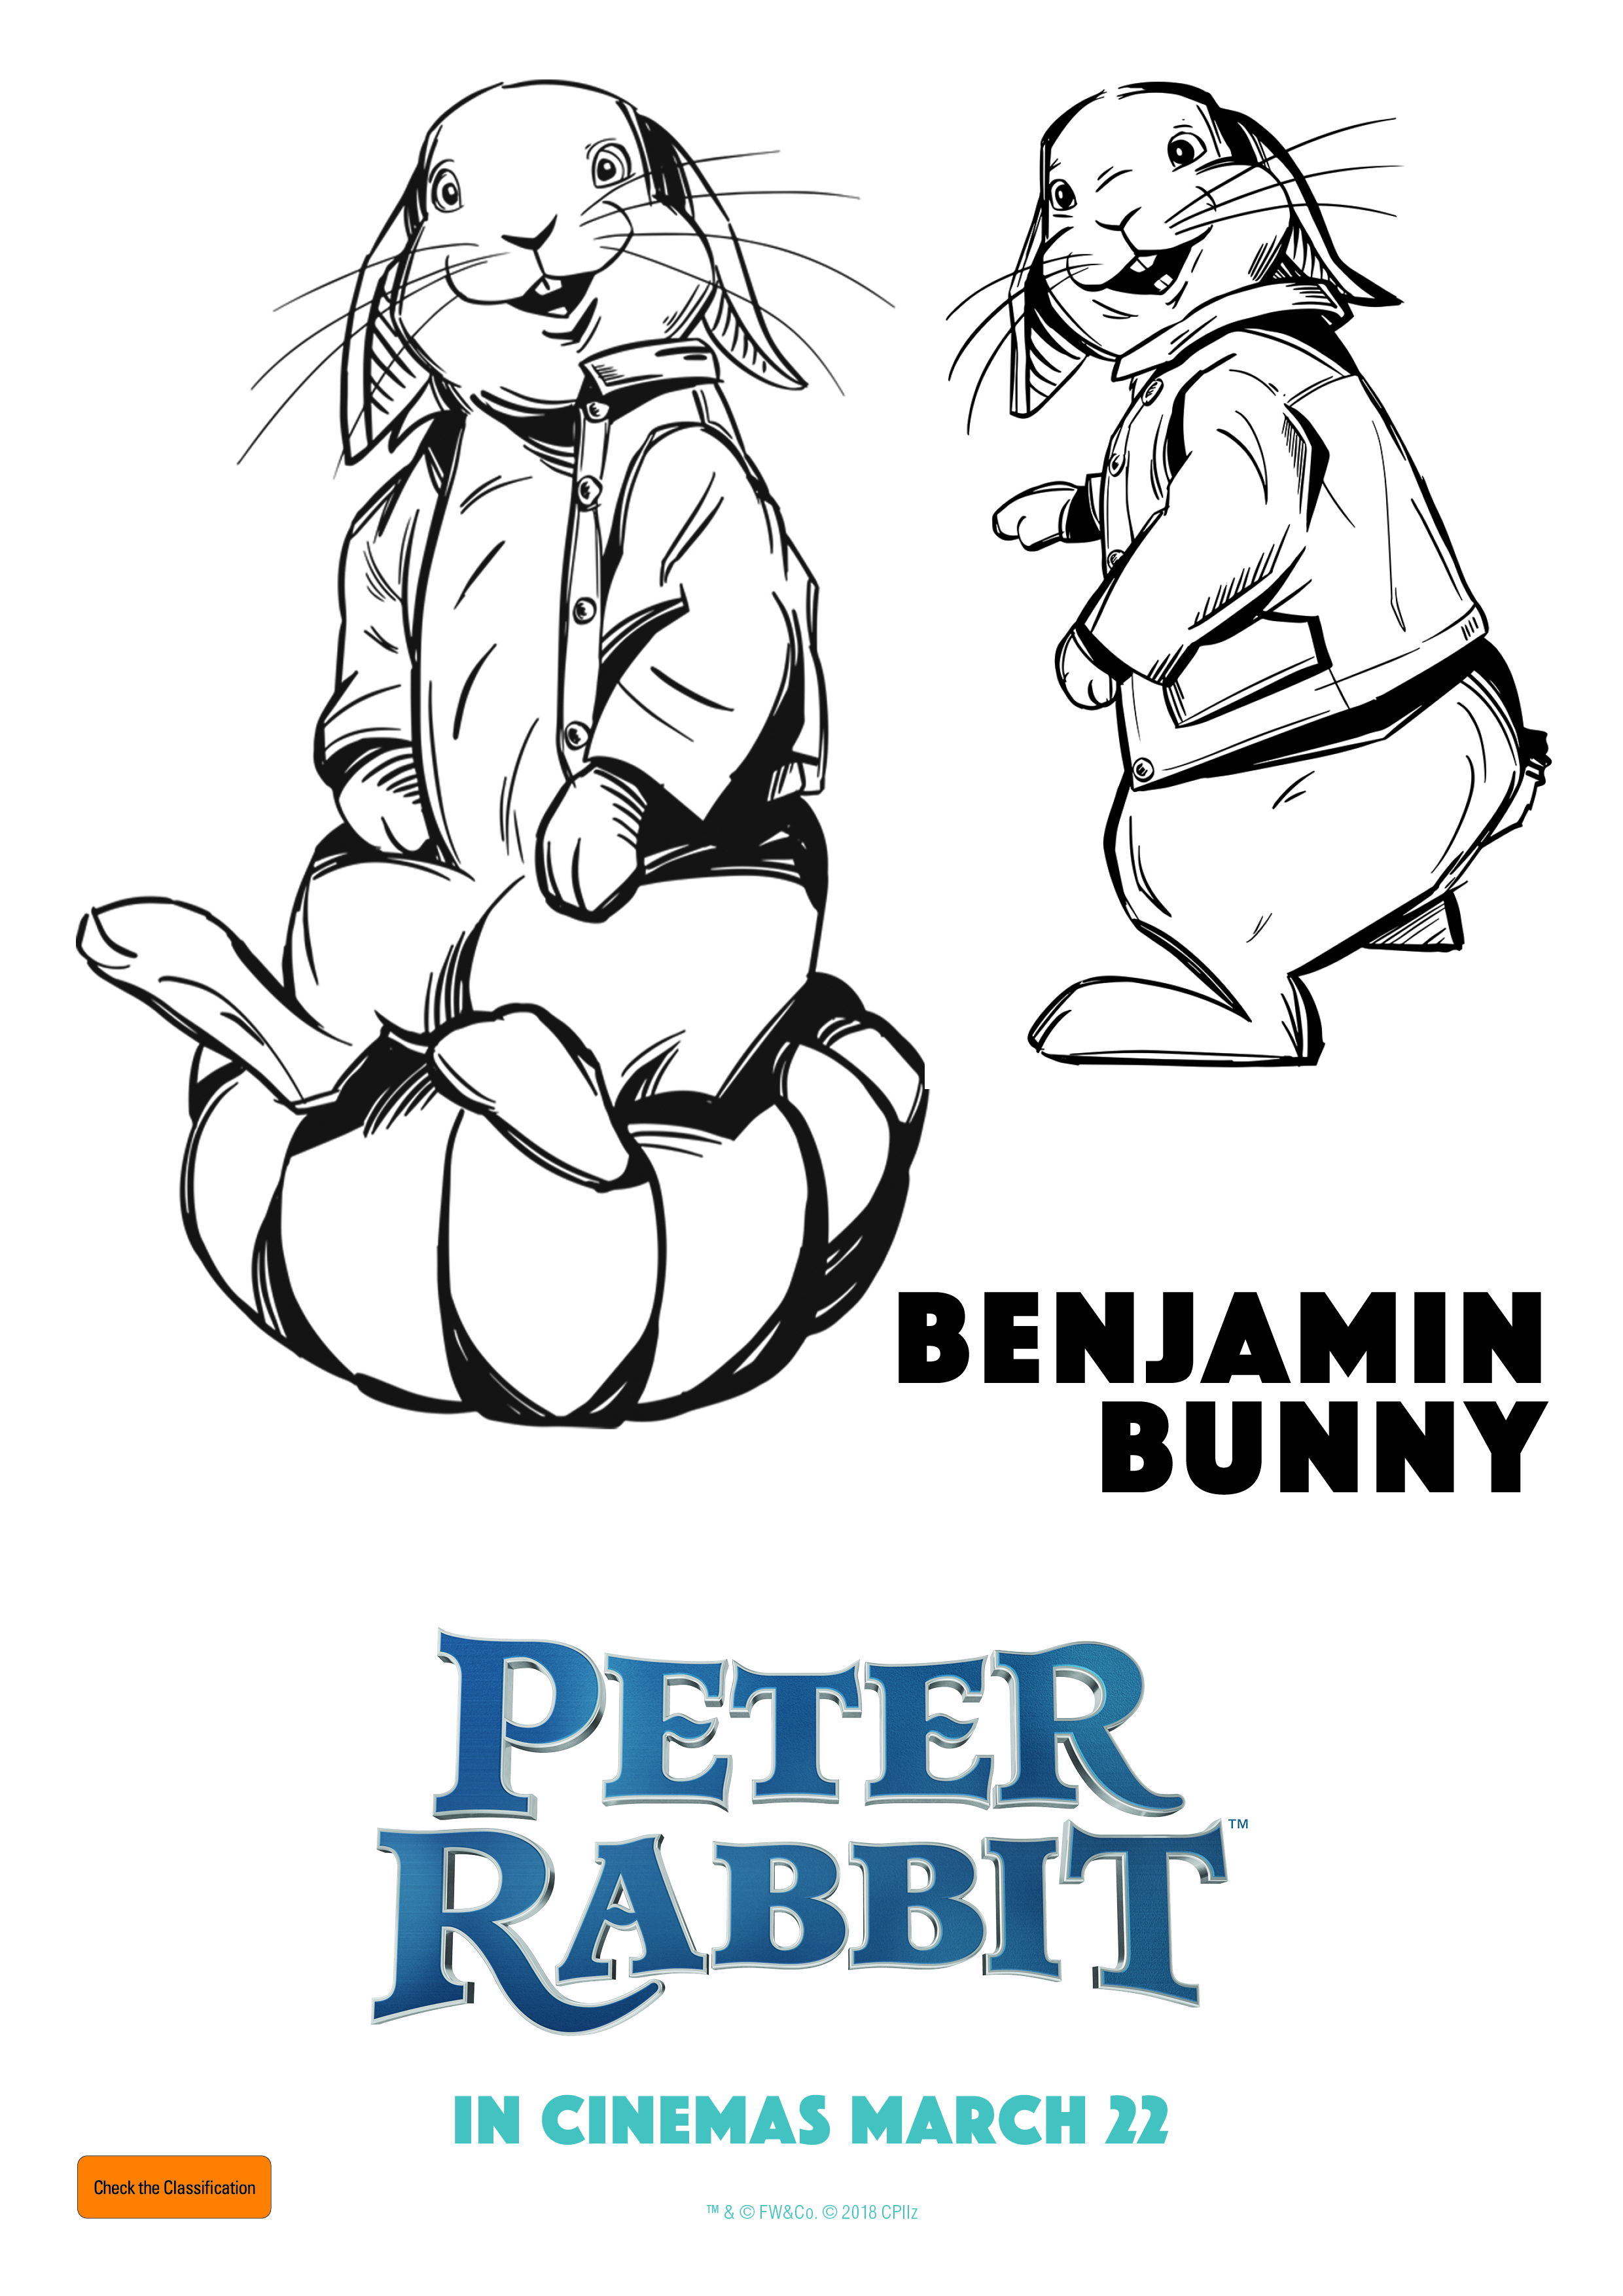 Copy of Benjamin Bunny - Colouring In Sheet